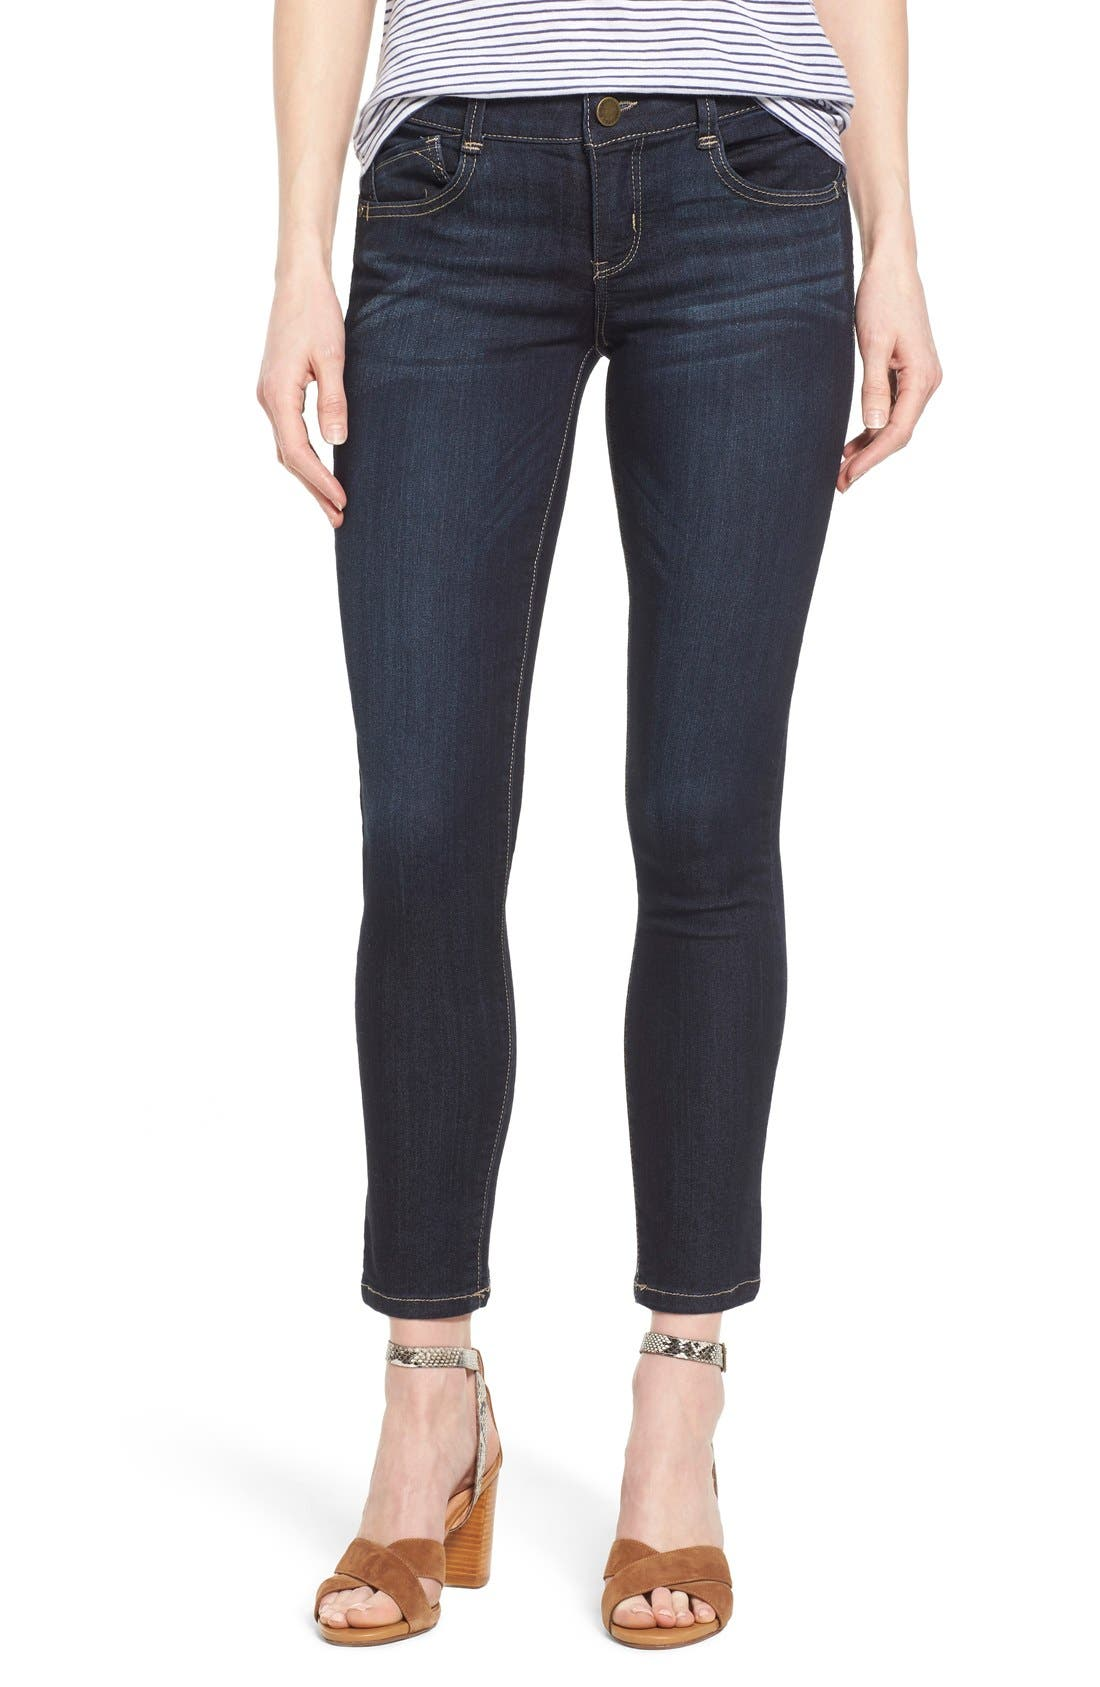 'Ab Solution' Stretch Ankle Skinny Jeans,                         Main,                         color, Indigo